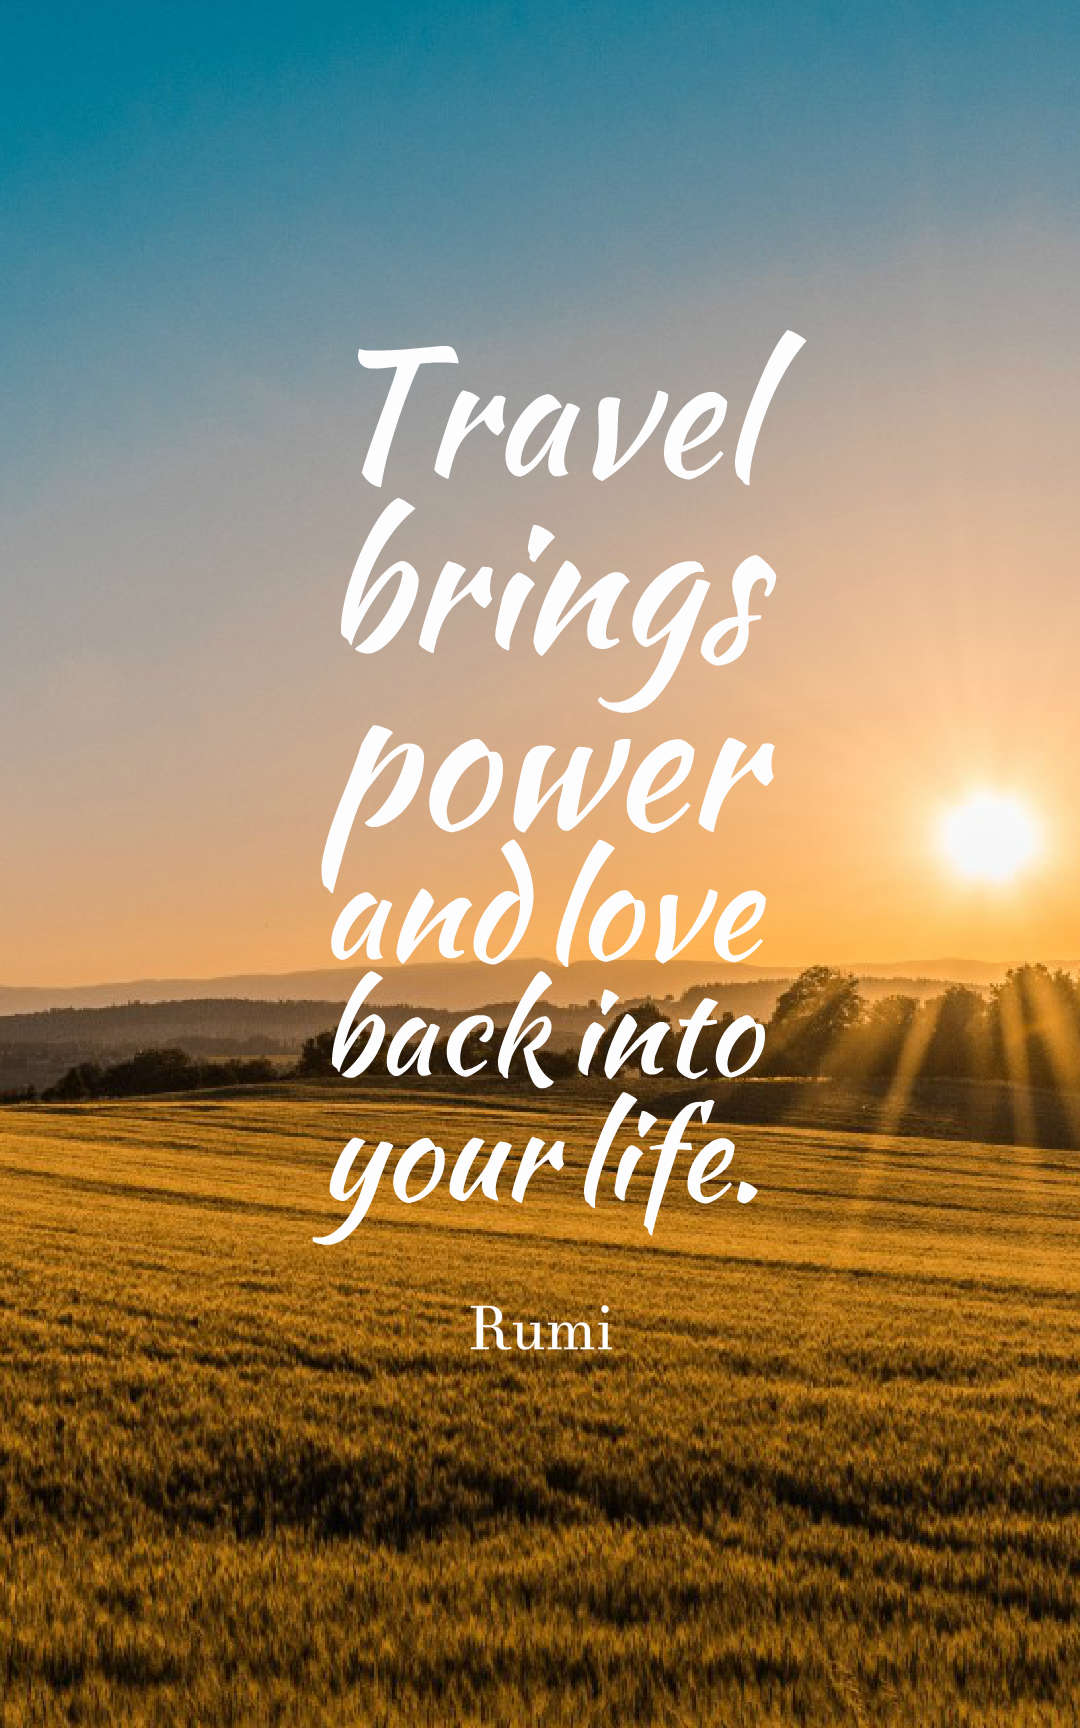 72 Inspirational Travel Quotes - Short Travel Quotes With ...